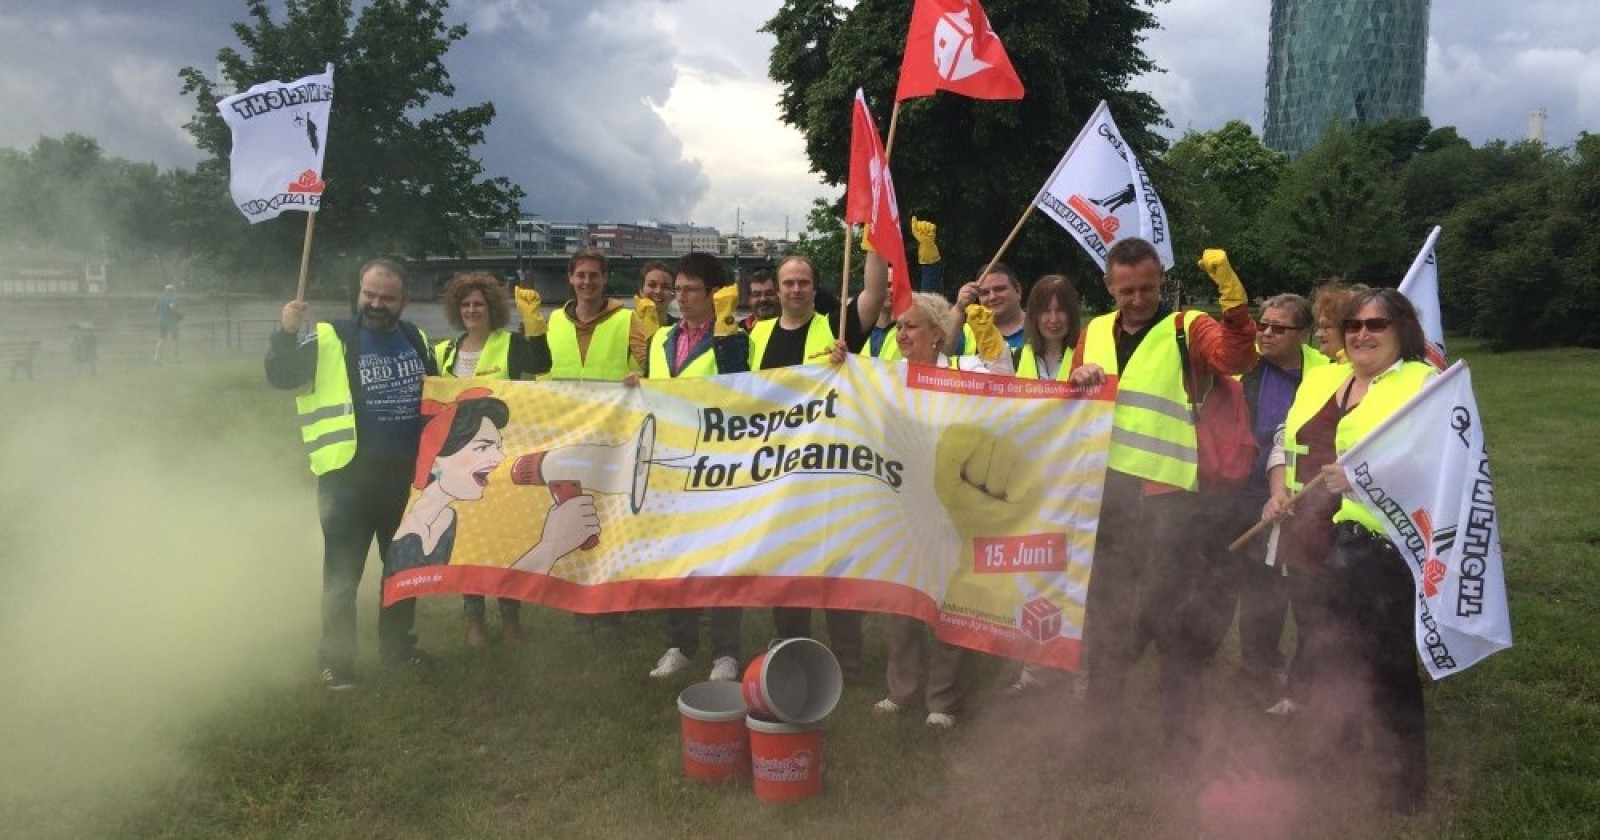 Respect for Cleaners - Tag der Gebäudereinigung in Frankfurt a.M.